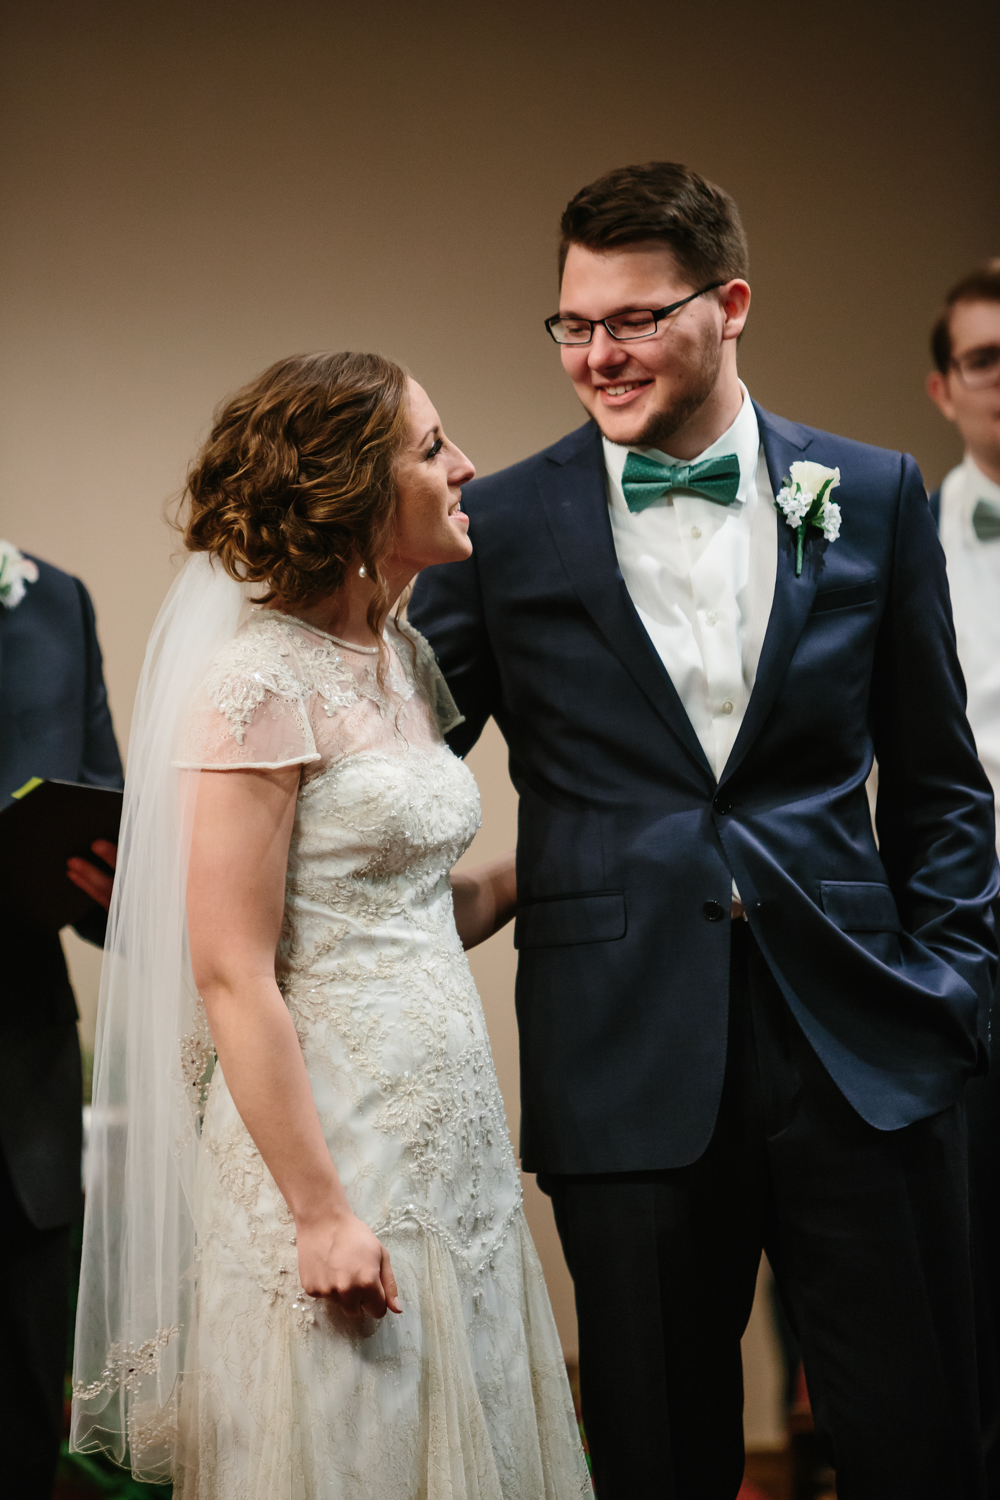 Fun, Happy Spring Wedding by Corrie Mick Photography-146.jpg